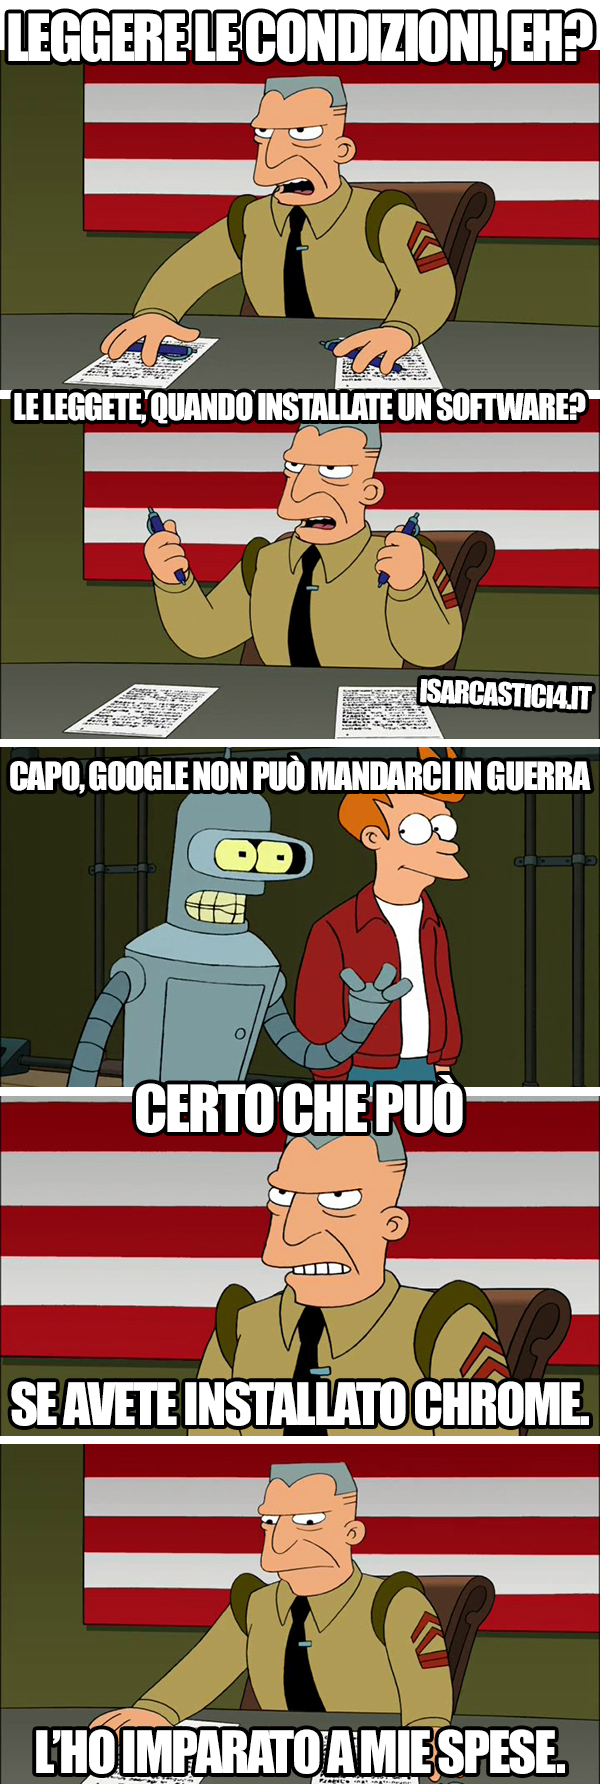 Futurama meme ita - Terms and conditions